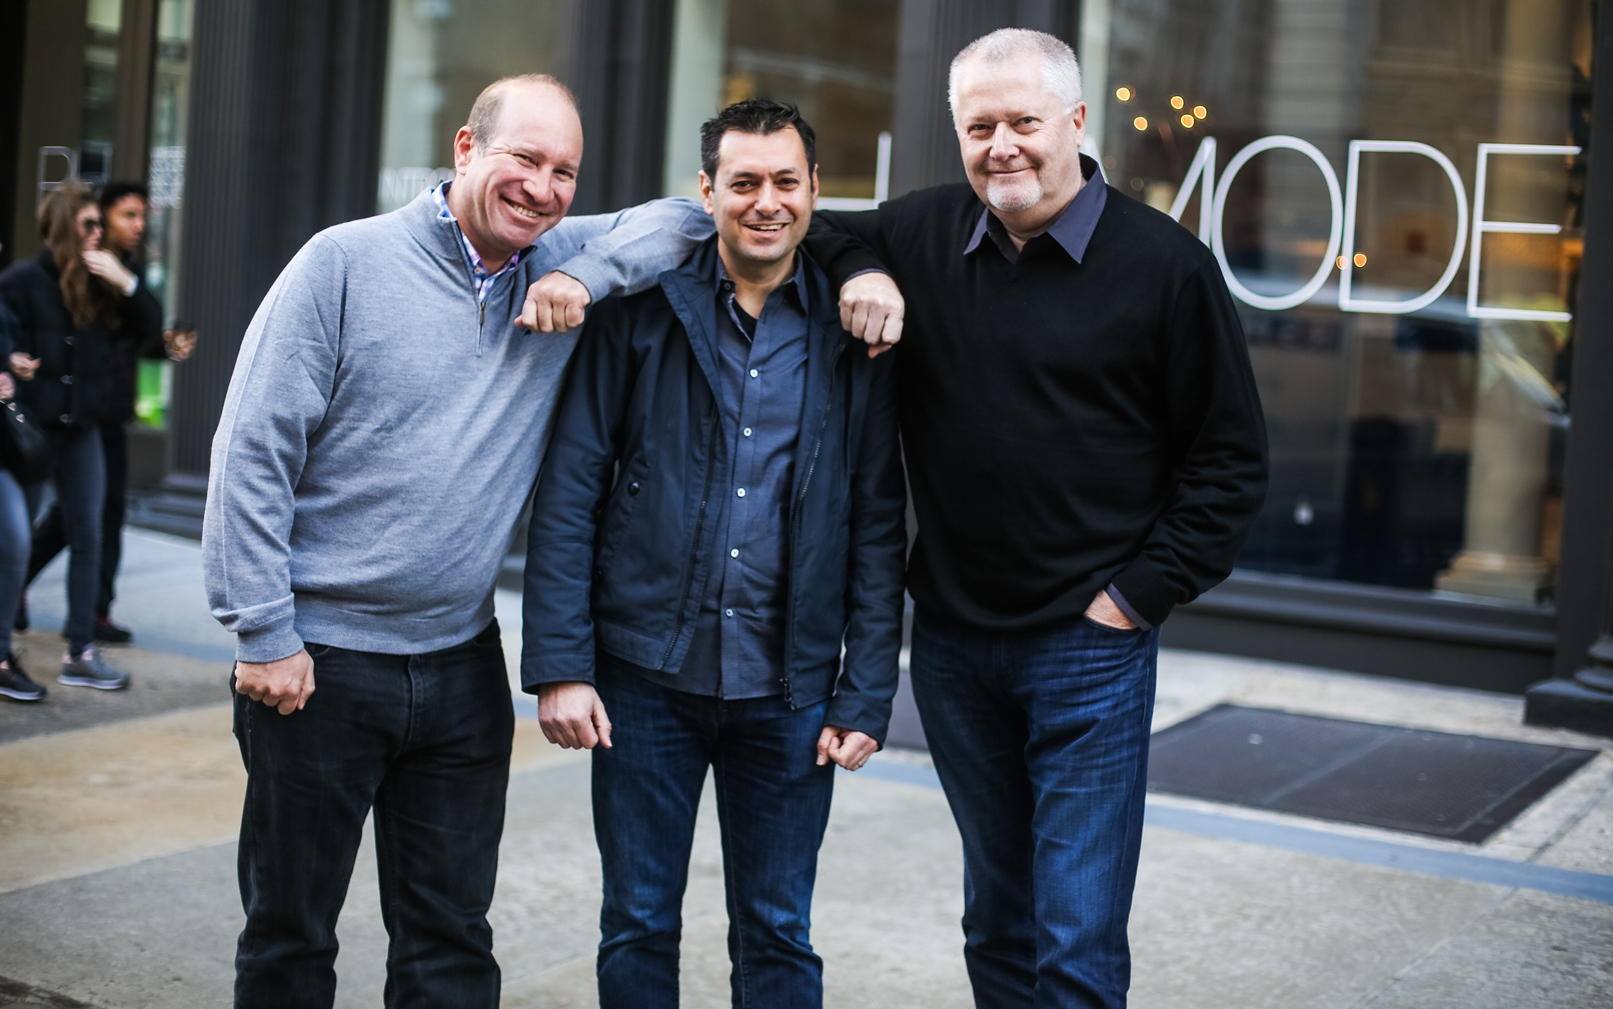 From left, Vroom cofounders Elie Wurtman, Allon Bloch and Marshall Chesrown. Photo: courtesy